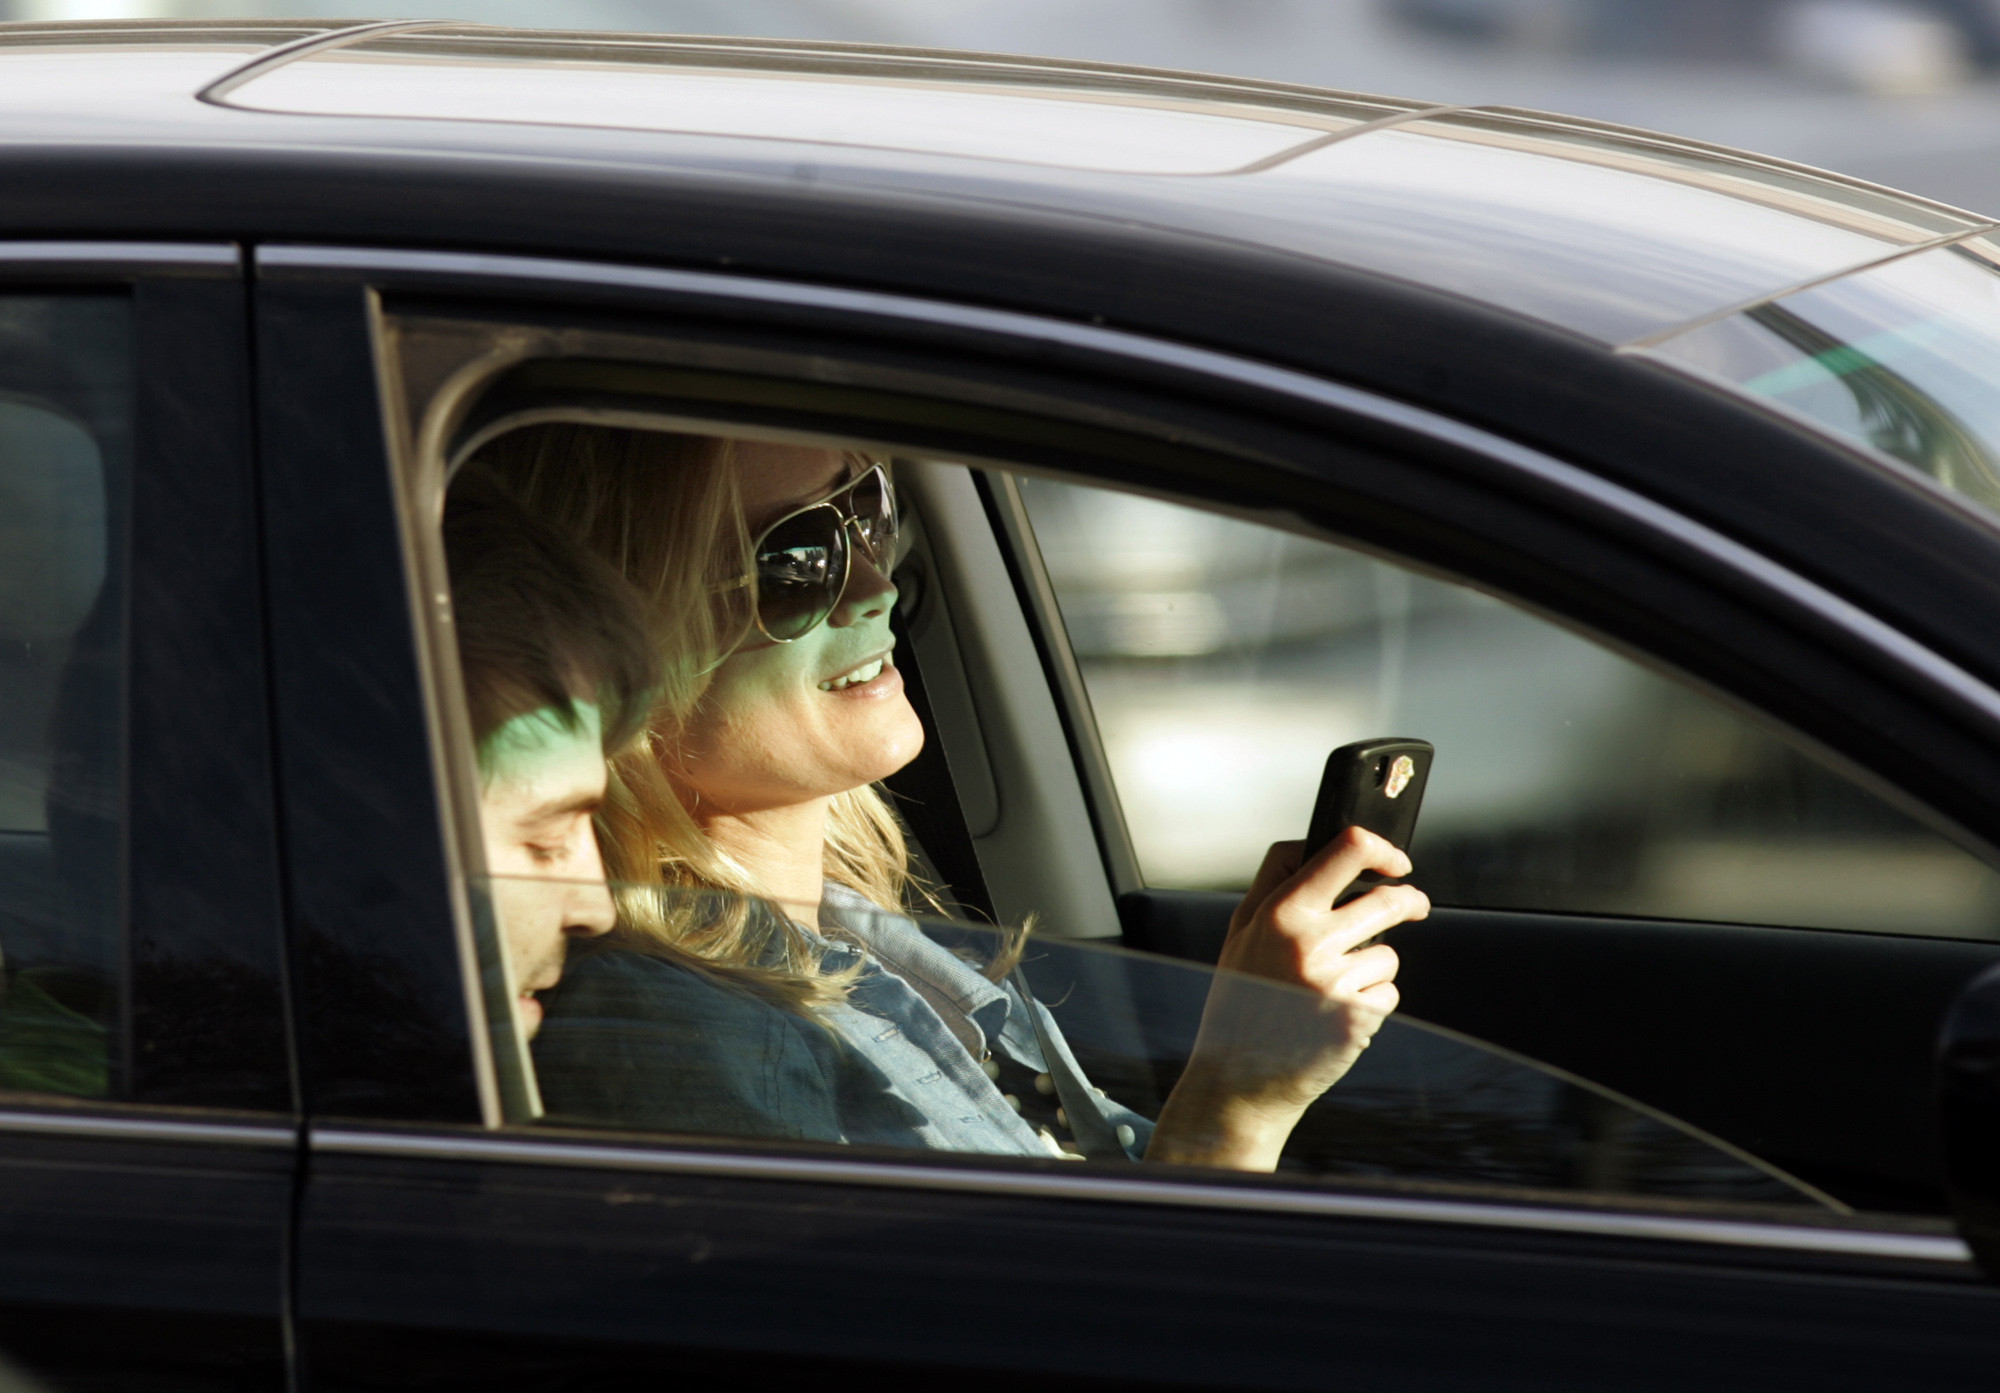 study talking on your hands phone while driving isn t any  study talking on your hands phone while driving isn t any safer redeye chicago